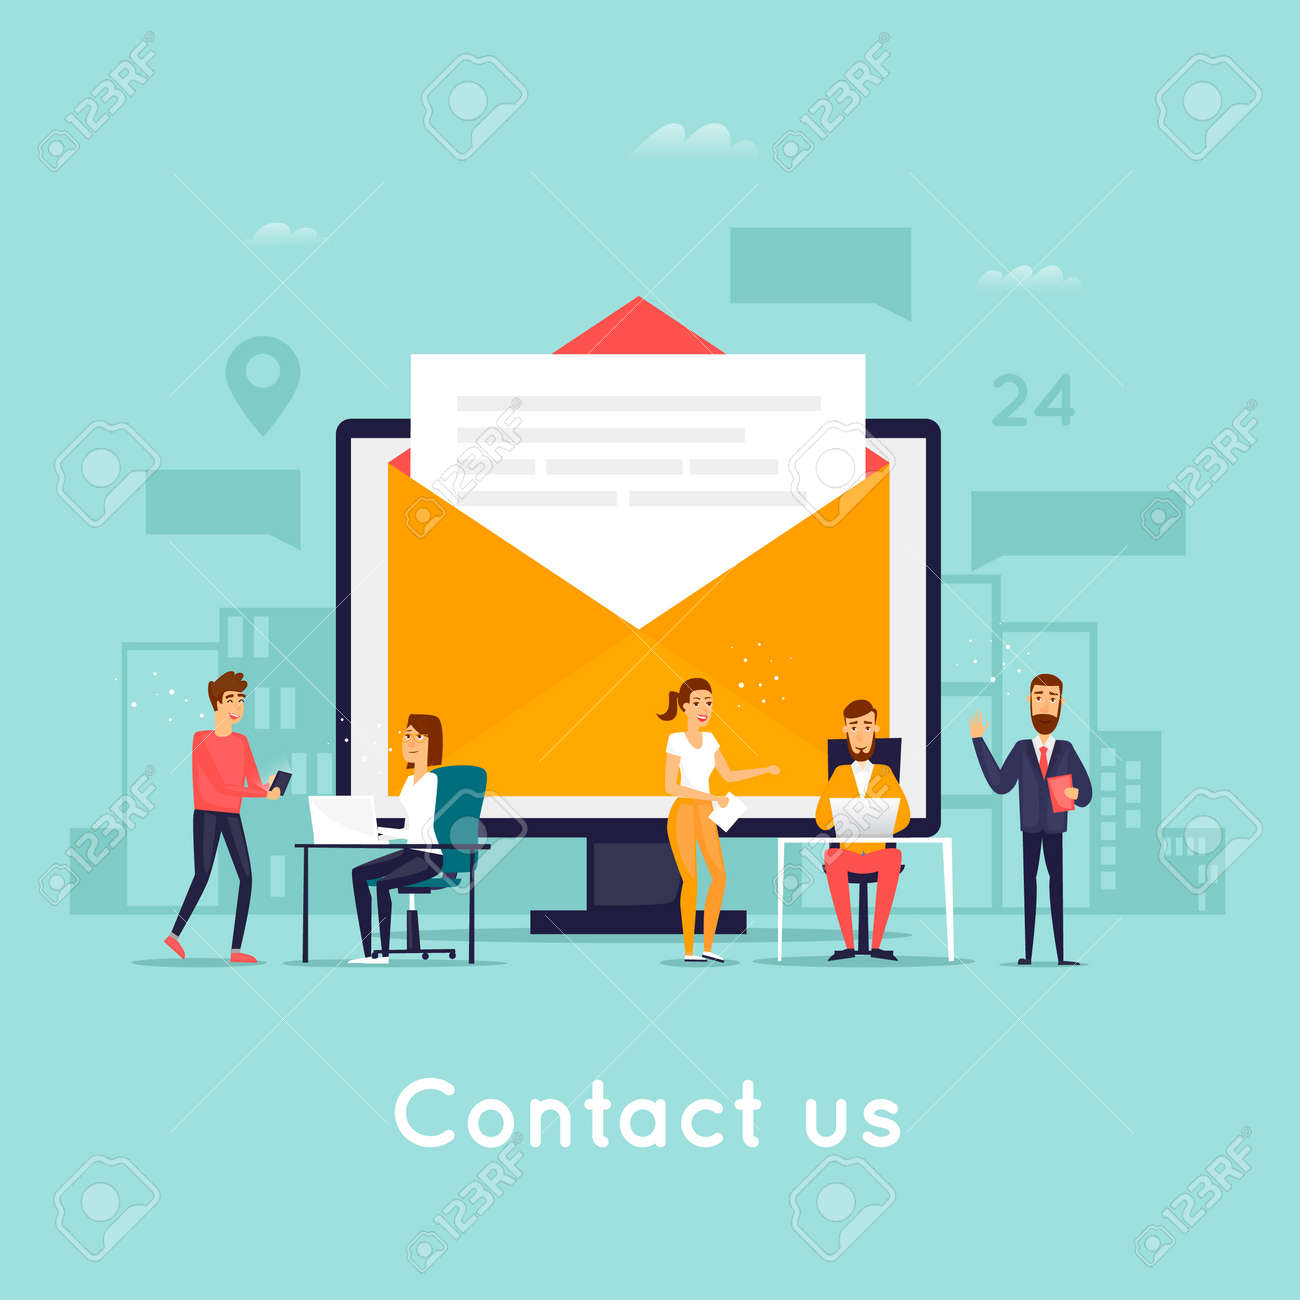 Contact us. Business people. Flat design vector illustration. - 87660965